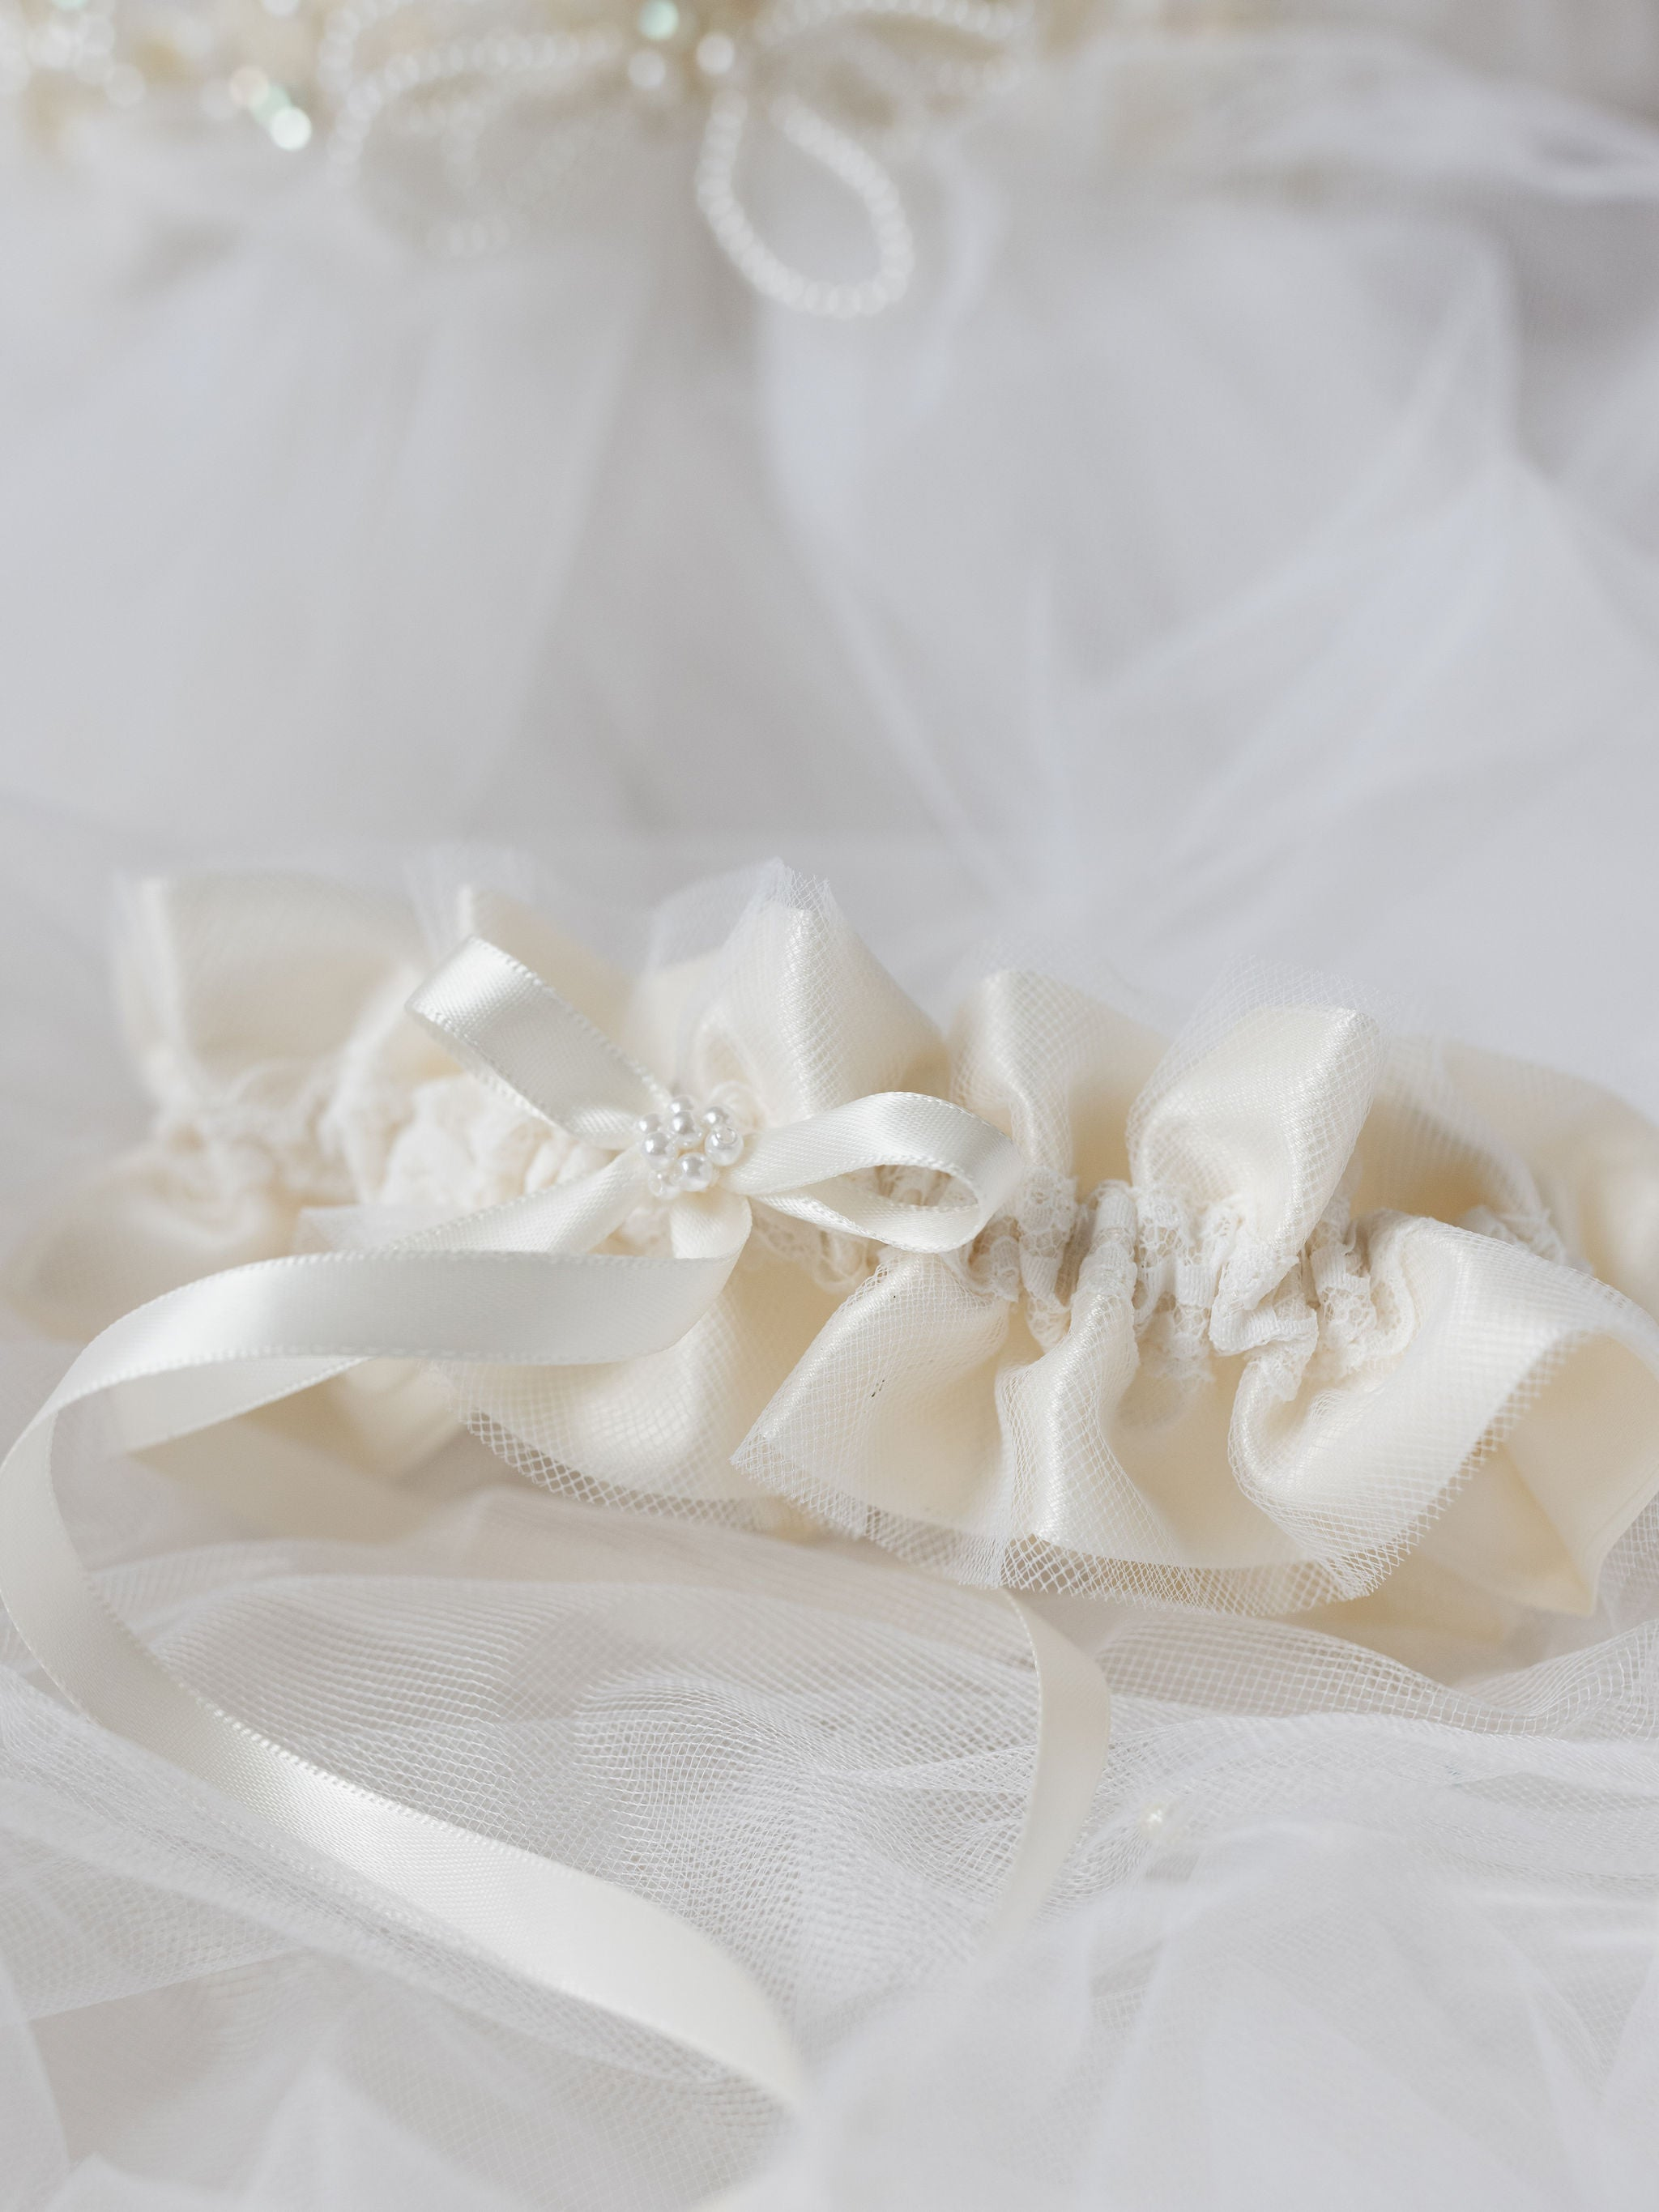 customized wedding garter sets for sisters from mother's bridal veil with pearls, tulle & lace handmade by The Garter Girl